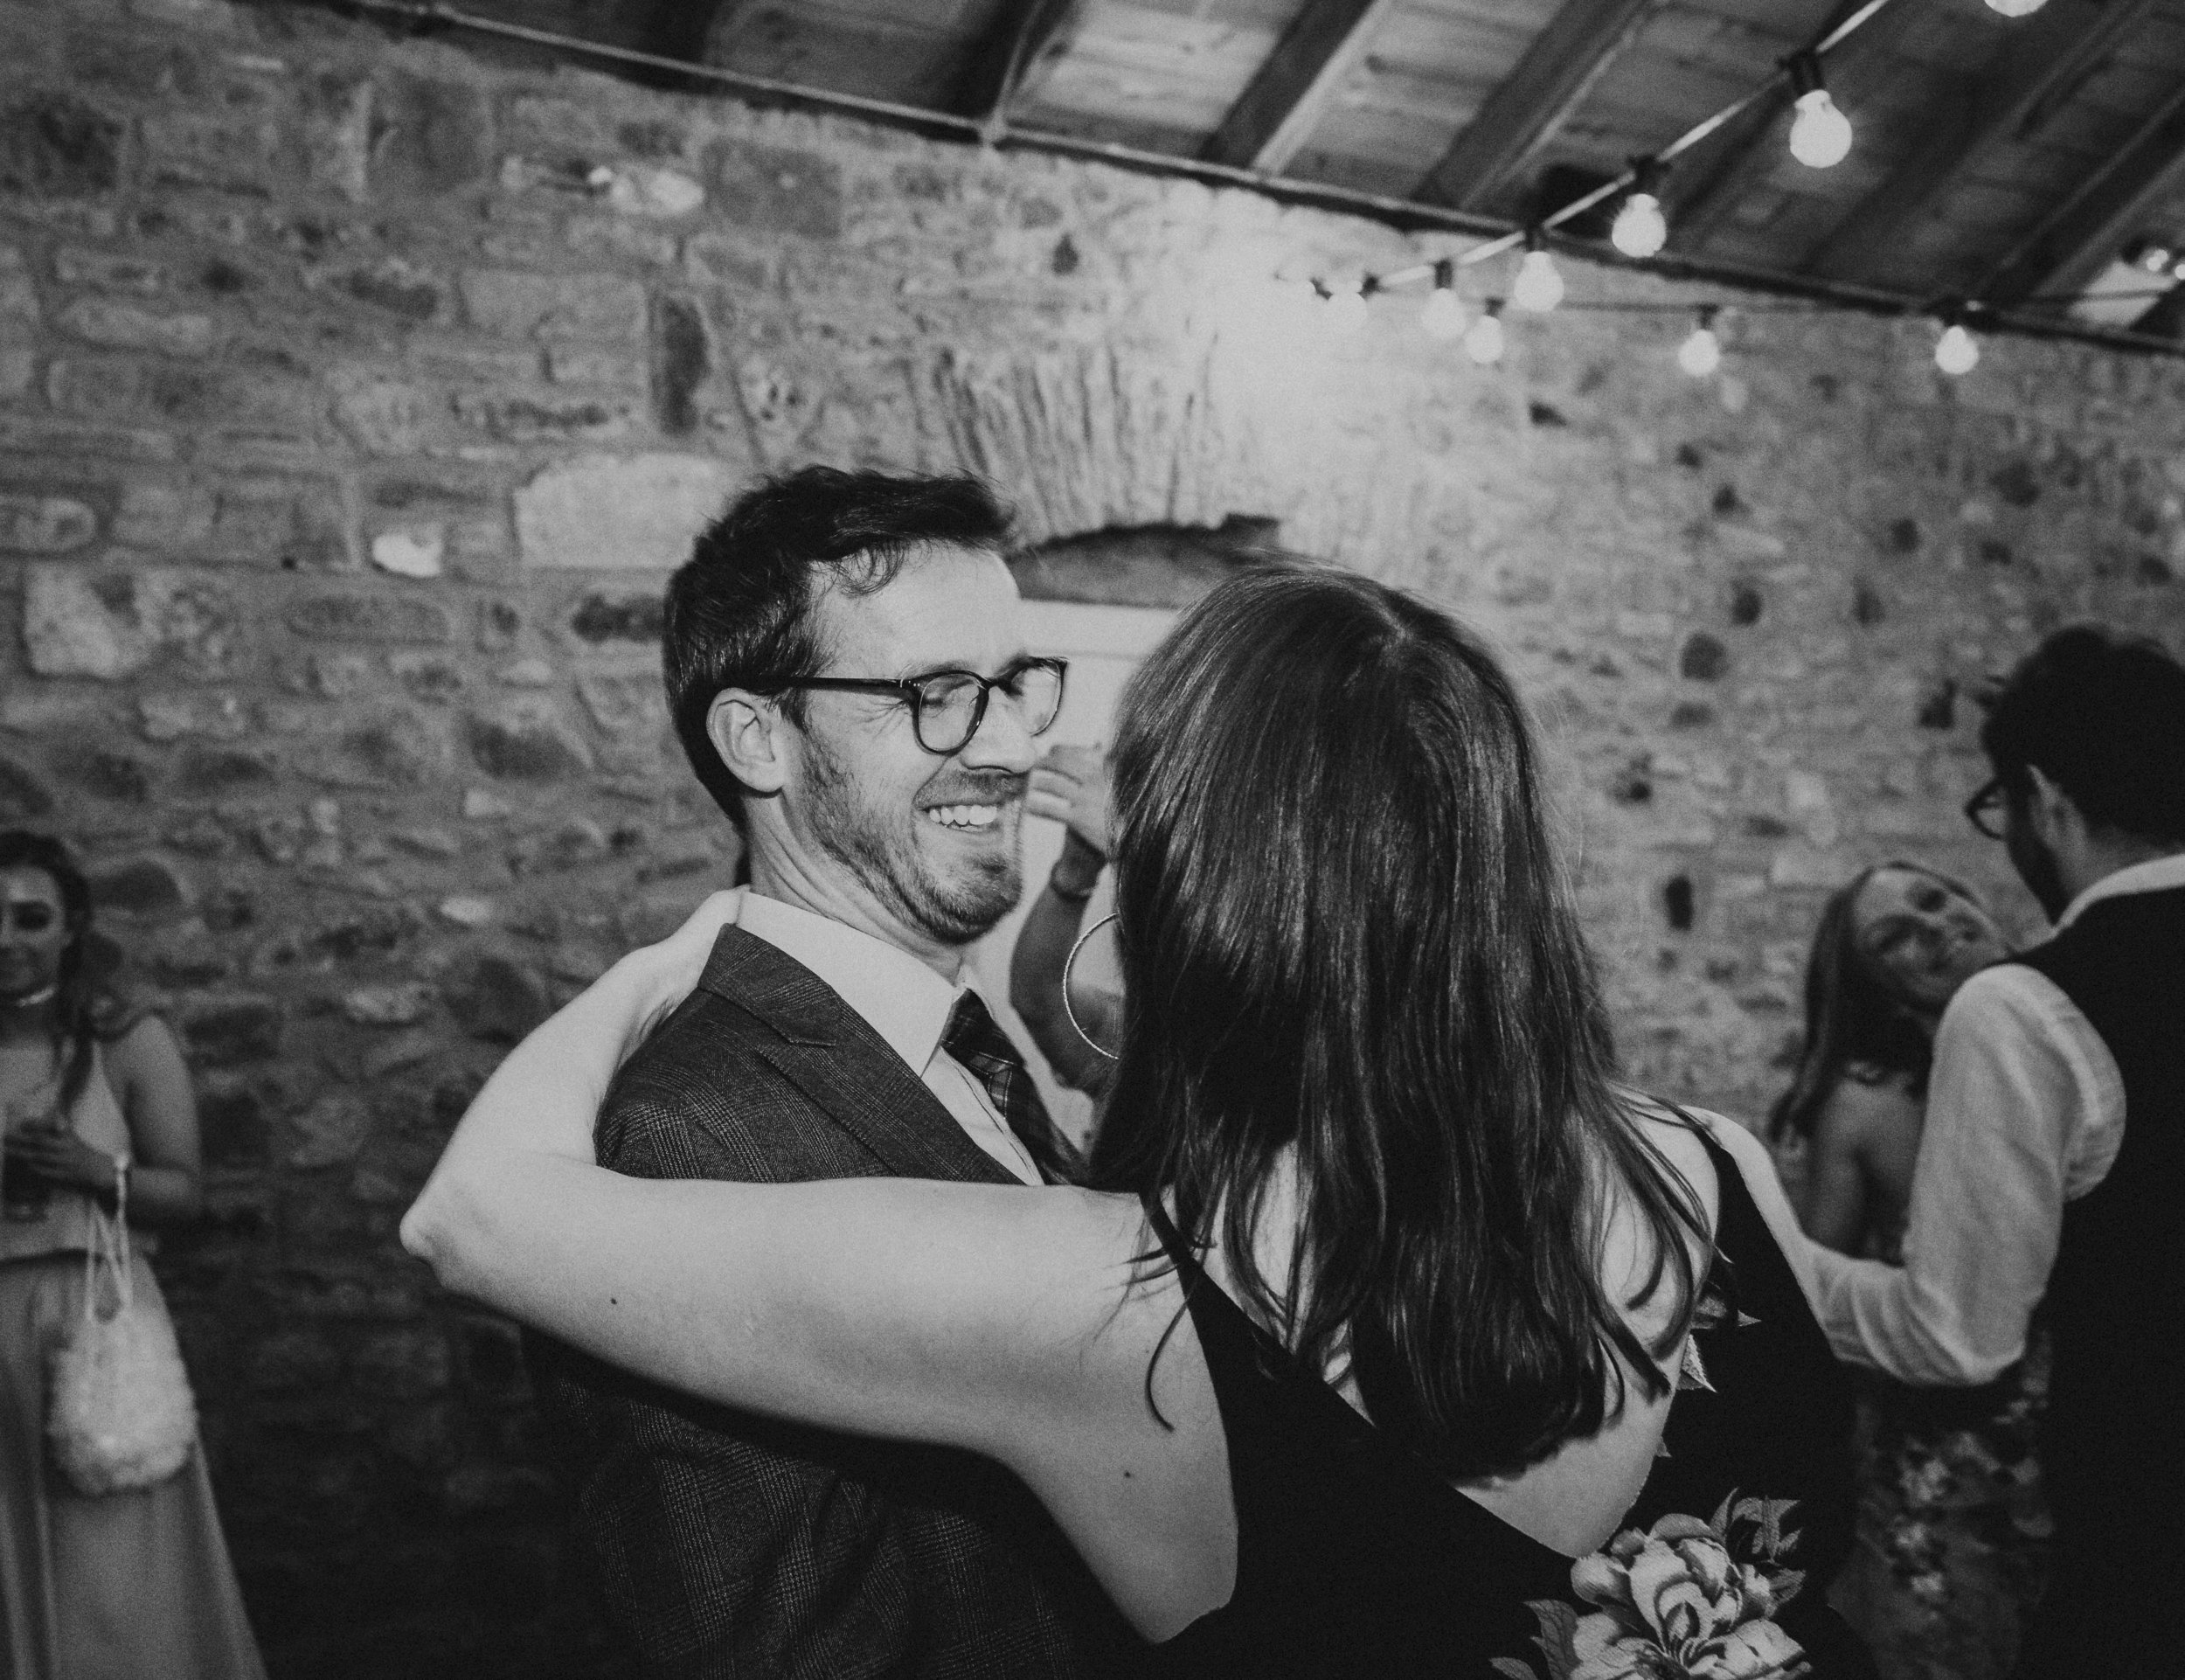 PJ_PHILLIPS_PHOTOGRAPHY_EDINBURGH_WEDDERBURN_BARNS_WEDDING_EDINBURGH_WEDDING_PHOTOGRAPHER_139.jpg